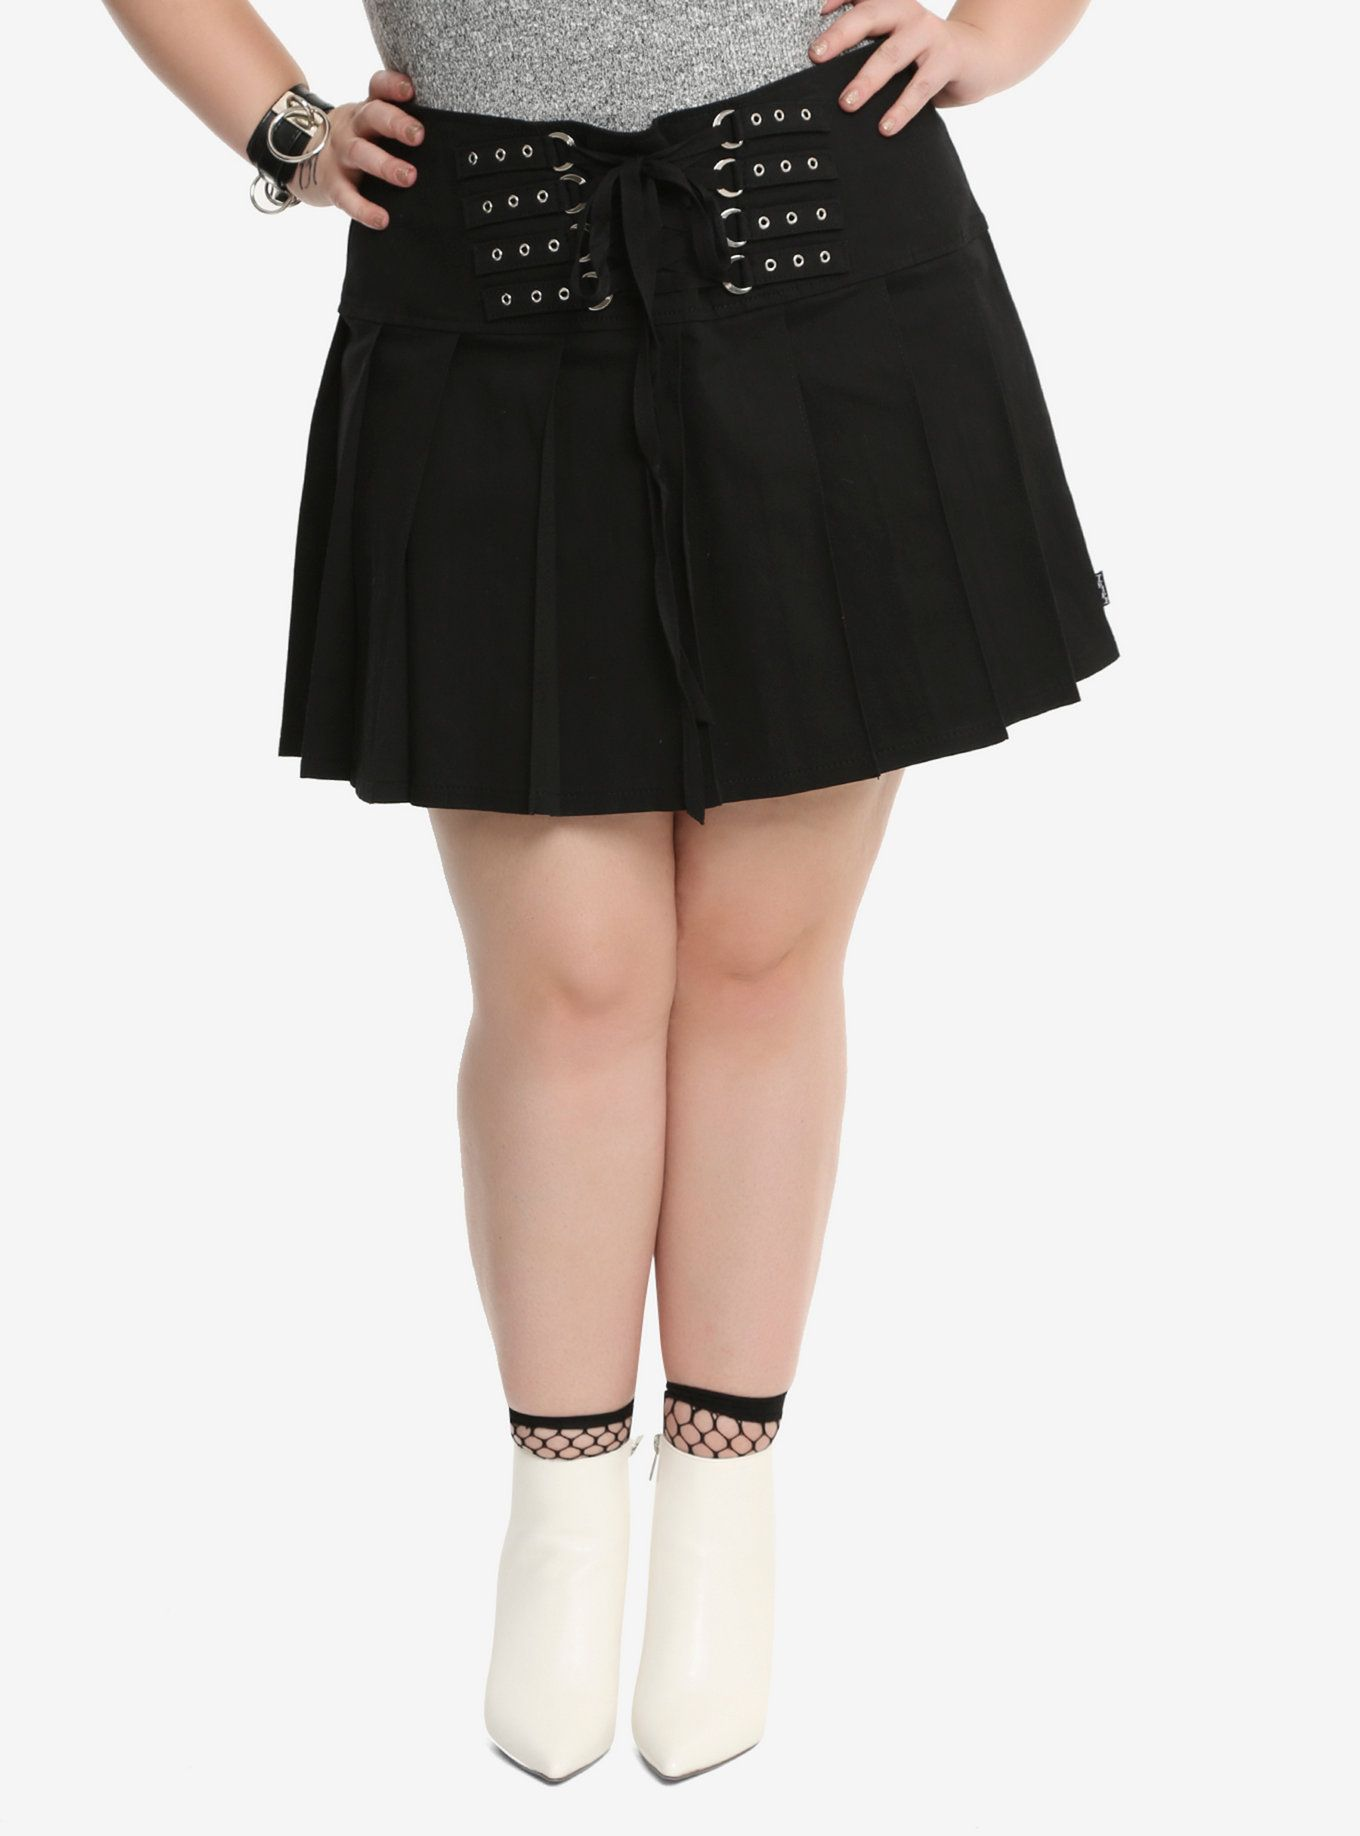 ef521739095 Everyone needs a black skirt in their wardrobe. Make yours cooler than  everyone else s when you wear this one from Tripp! The black pleated skirt  has strap ...